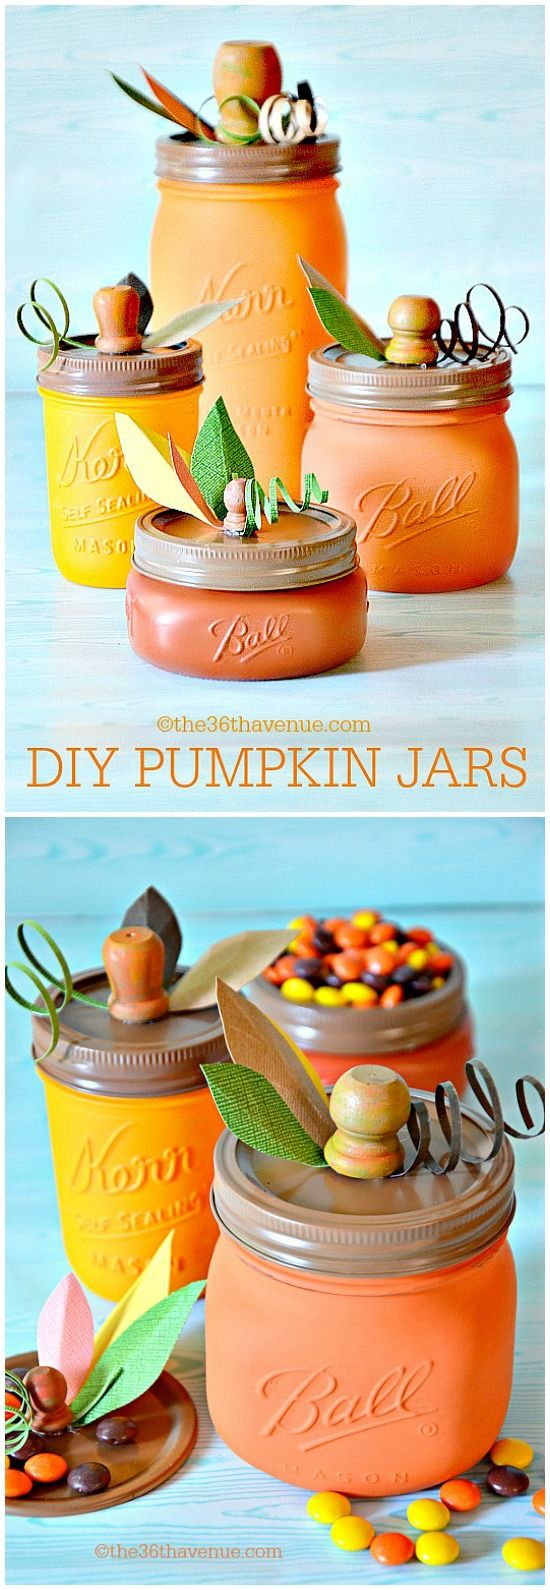 Jars   and flashfire Jars    Crafts Pumpkins Pumpkin asics Mason DIY